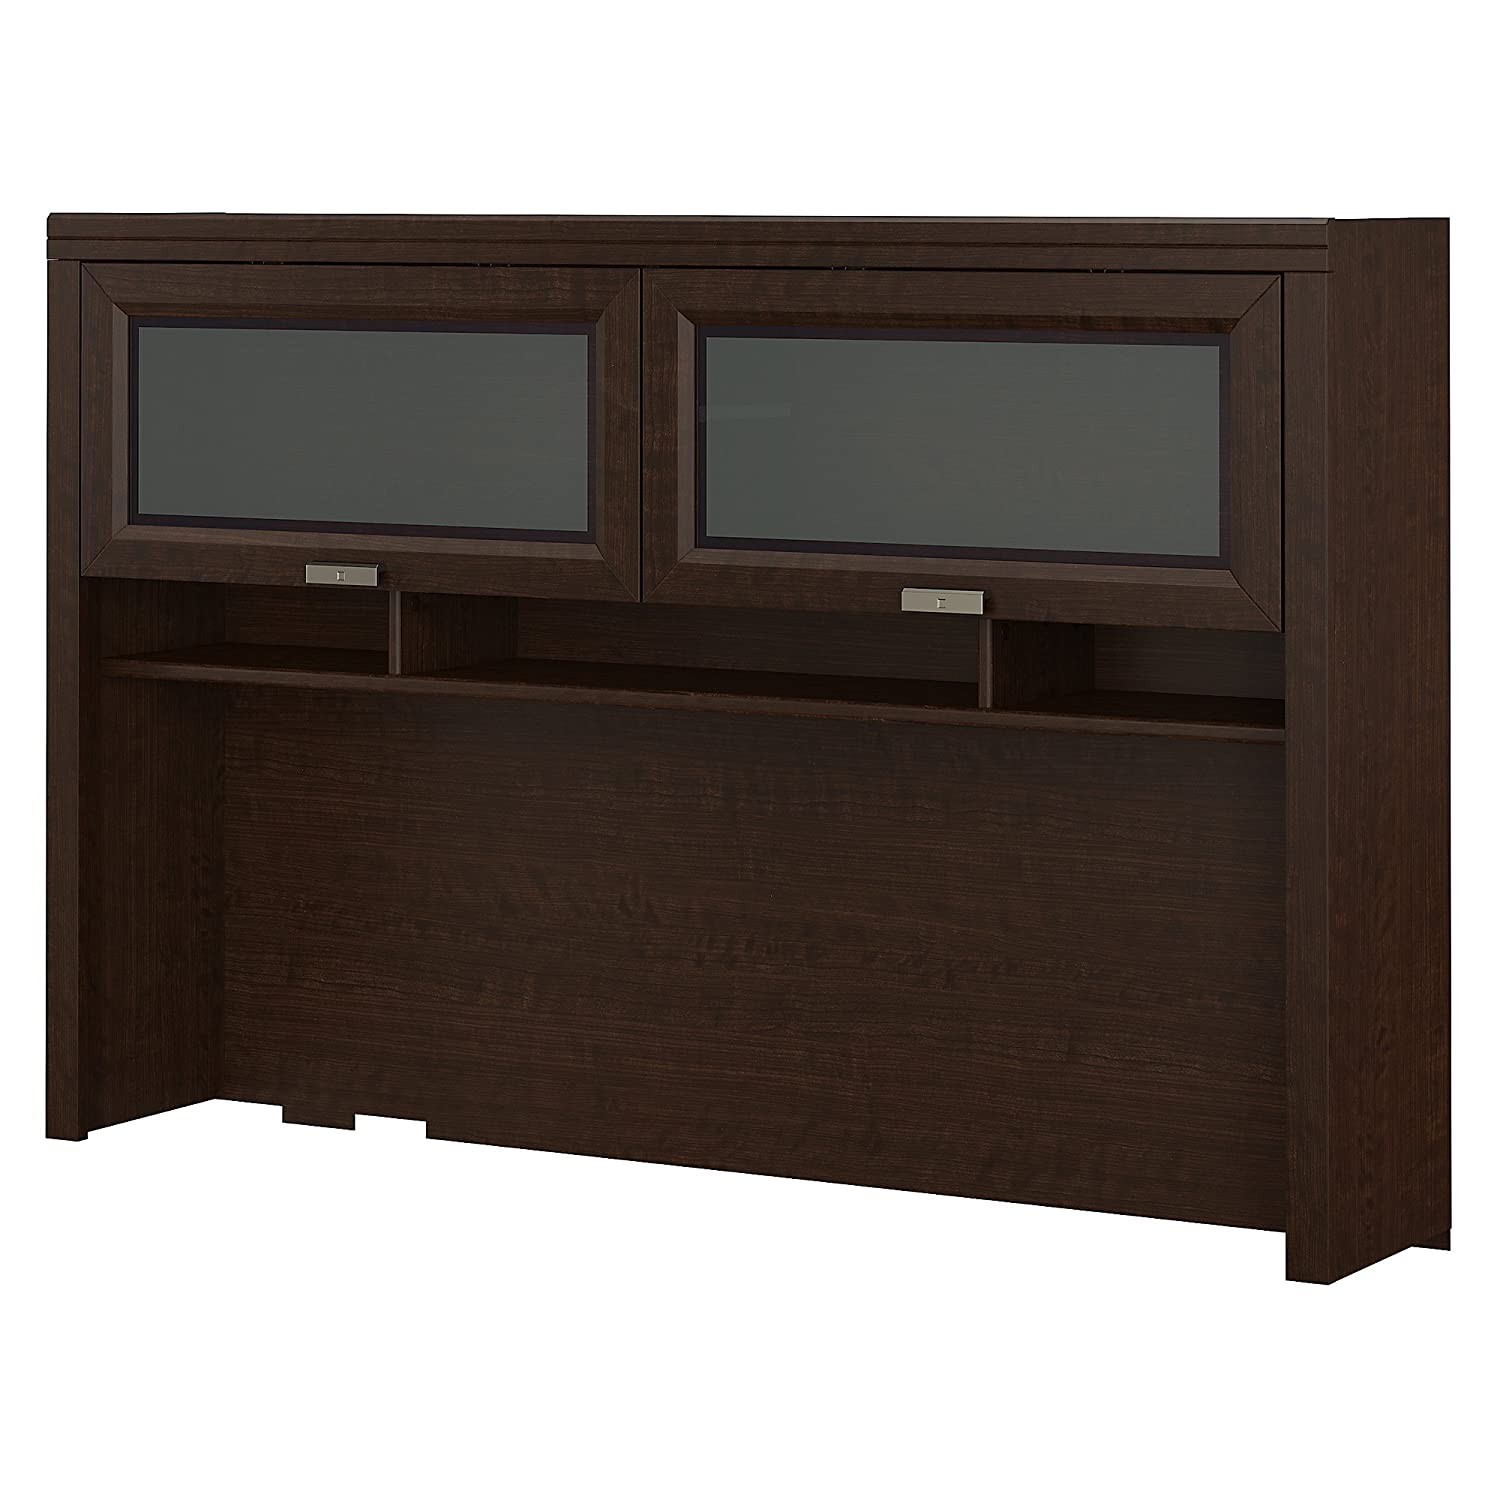 Bush Furniture Tuxedo Hutch for L Shaped Desk in Mocha Cherry WC21831